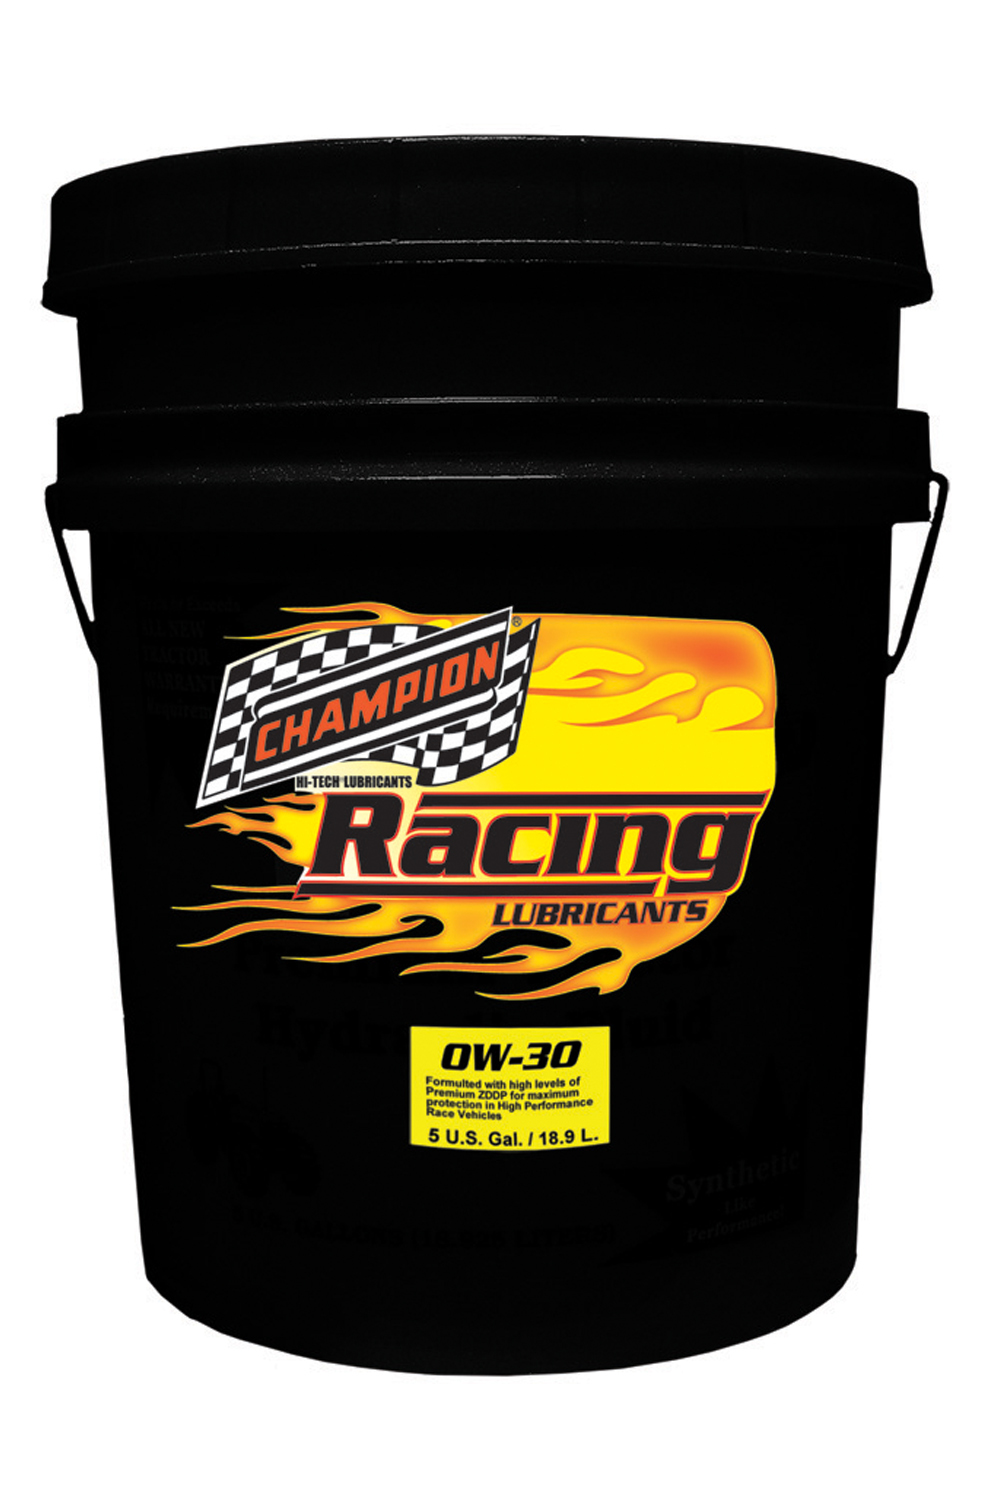 0w30 Synthetic Racing Oil 5 Gallon